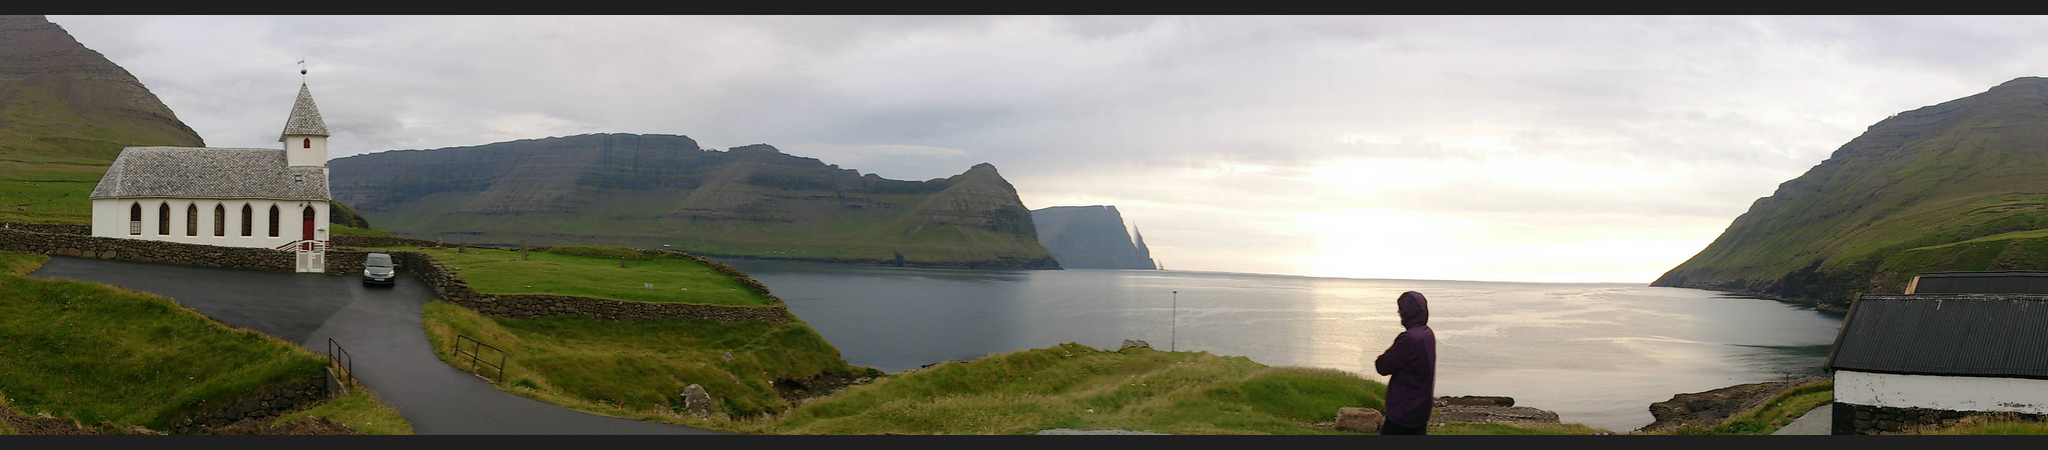 Vidareidl view Faroe Islands summer